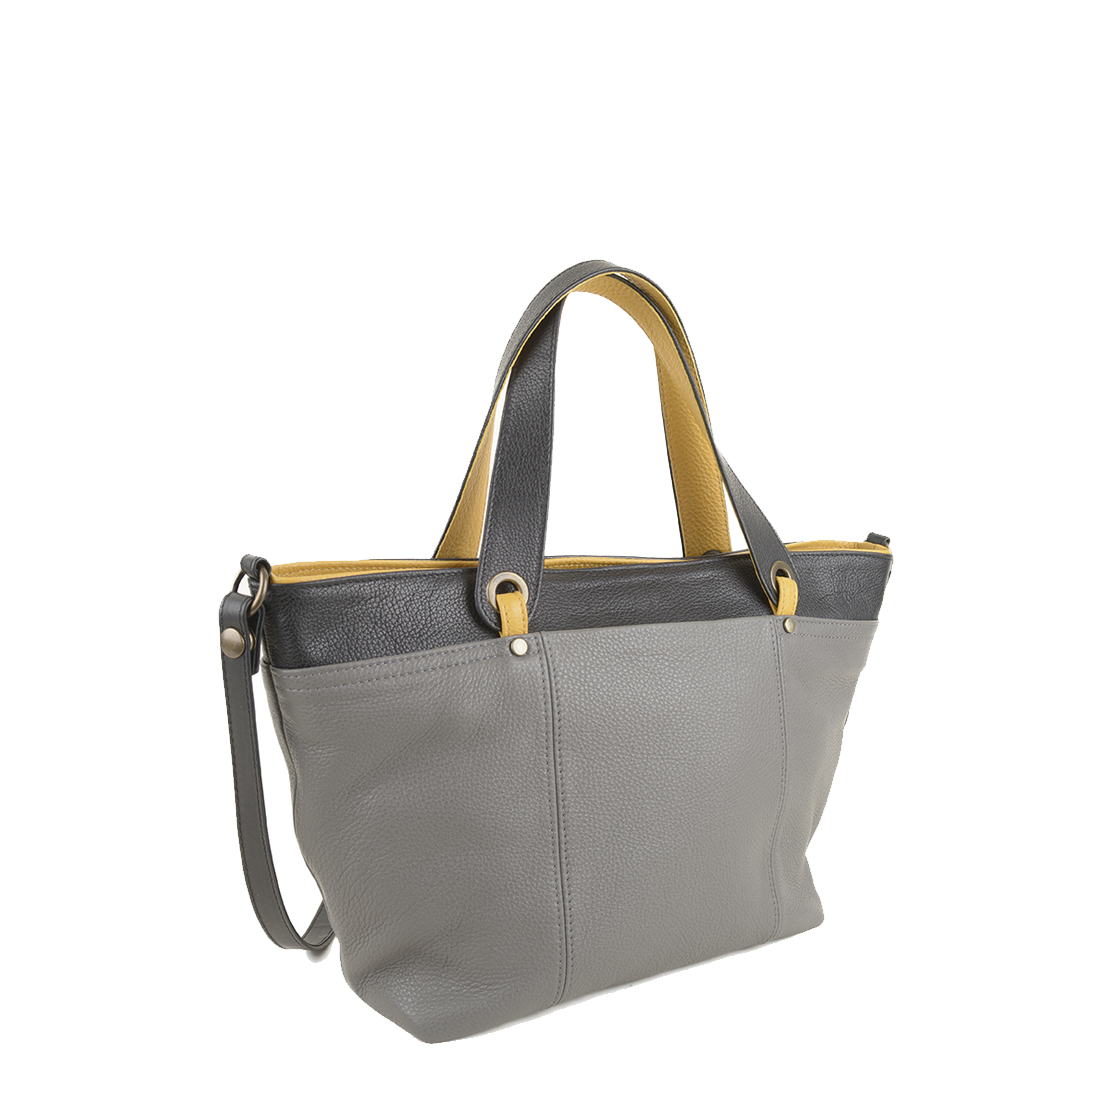 Lucy Gull Mustard Leather Tote Bag